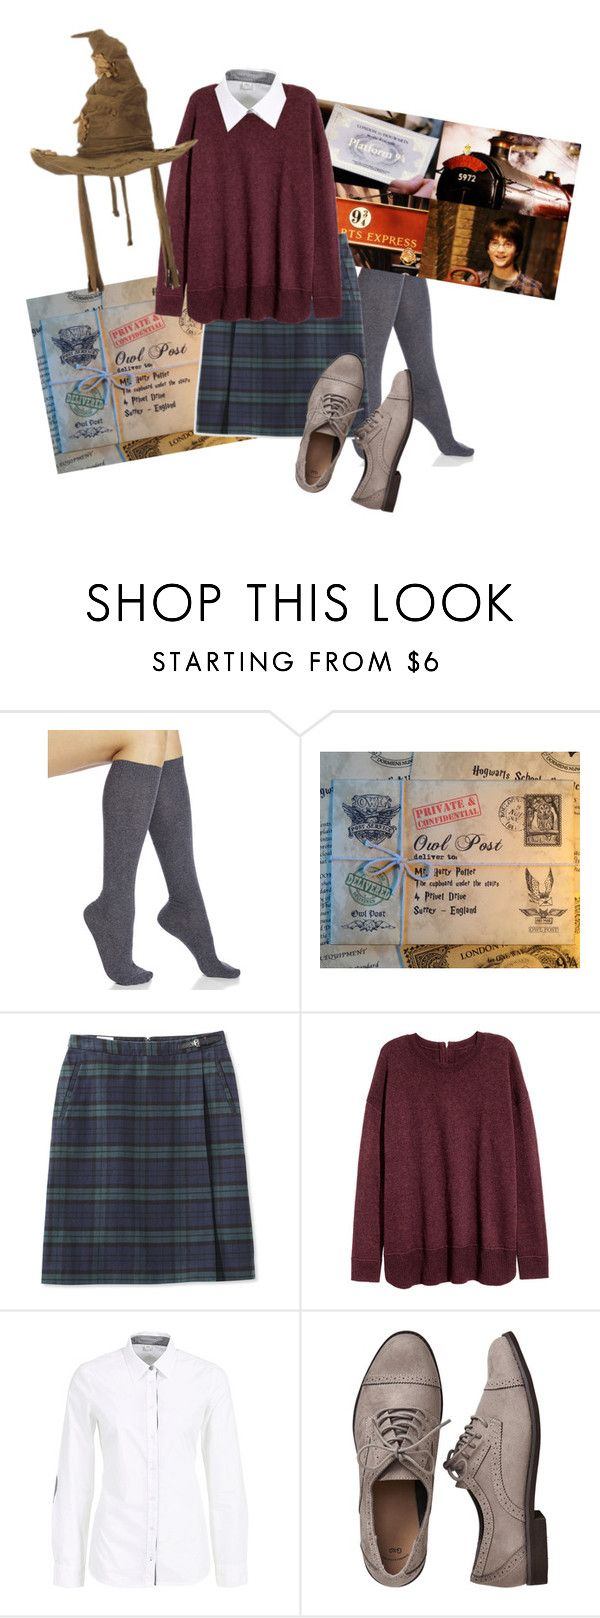 """First week at Hogwarts"" by fashion-film-fun ❤ liked on Polyvore featuring Hue, L.L.Bean, Gap and plus size clothing"